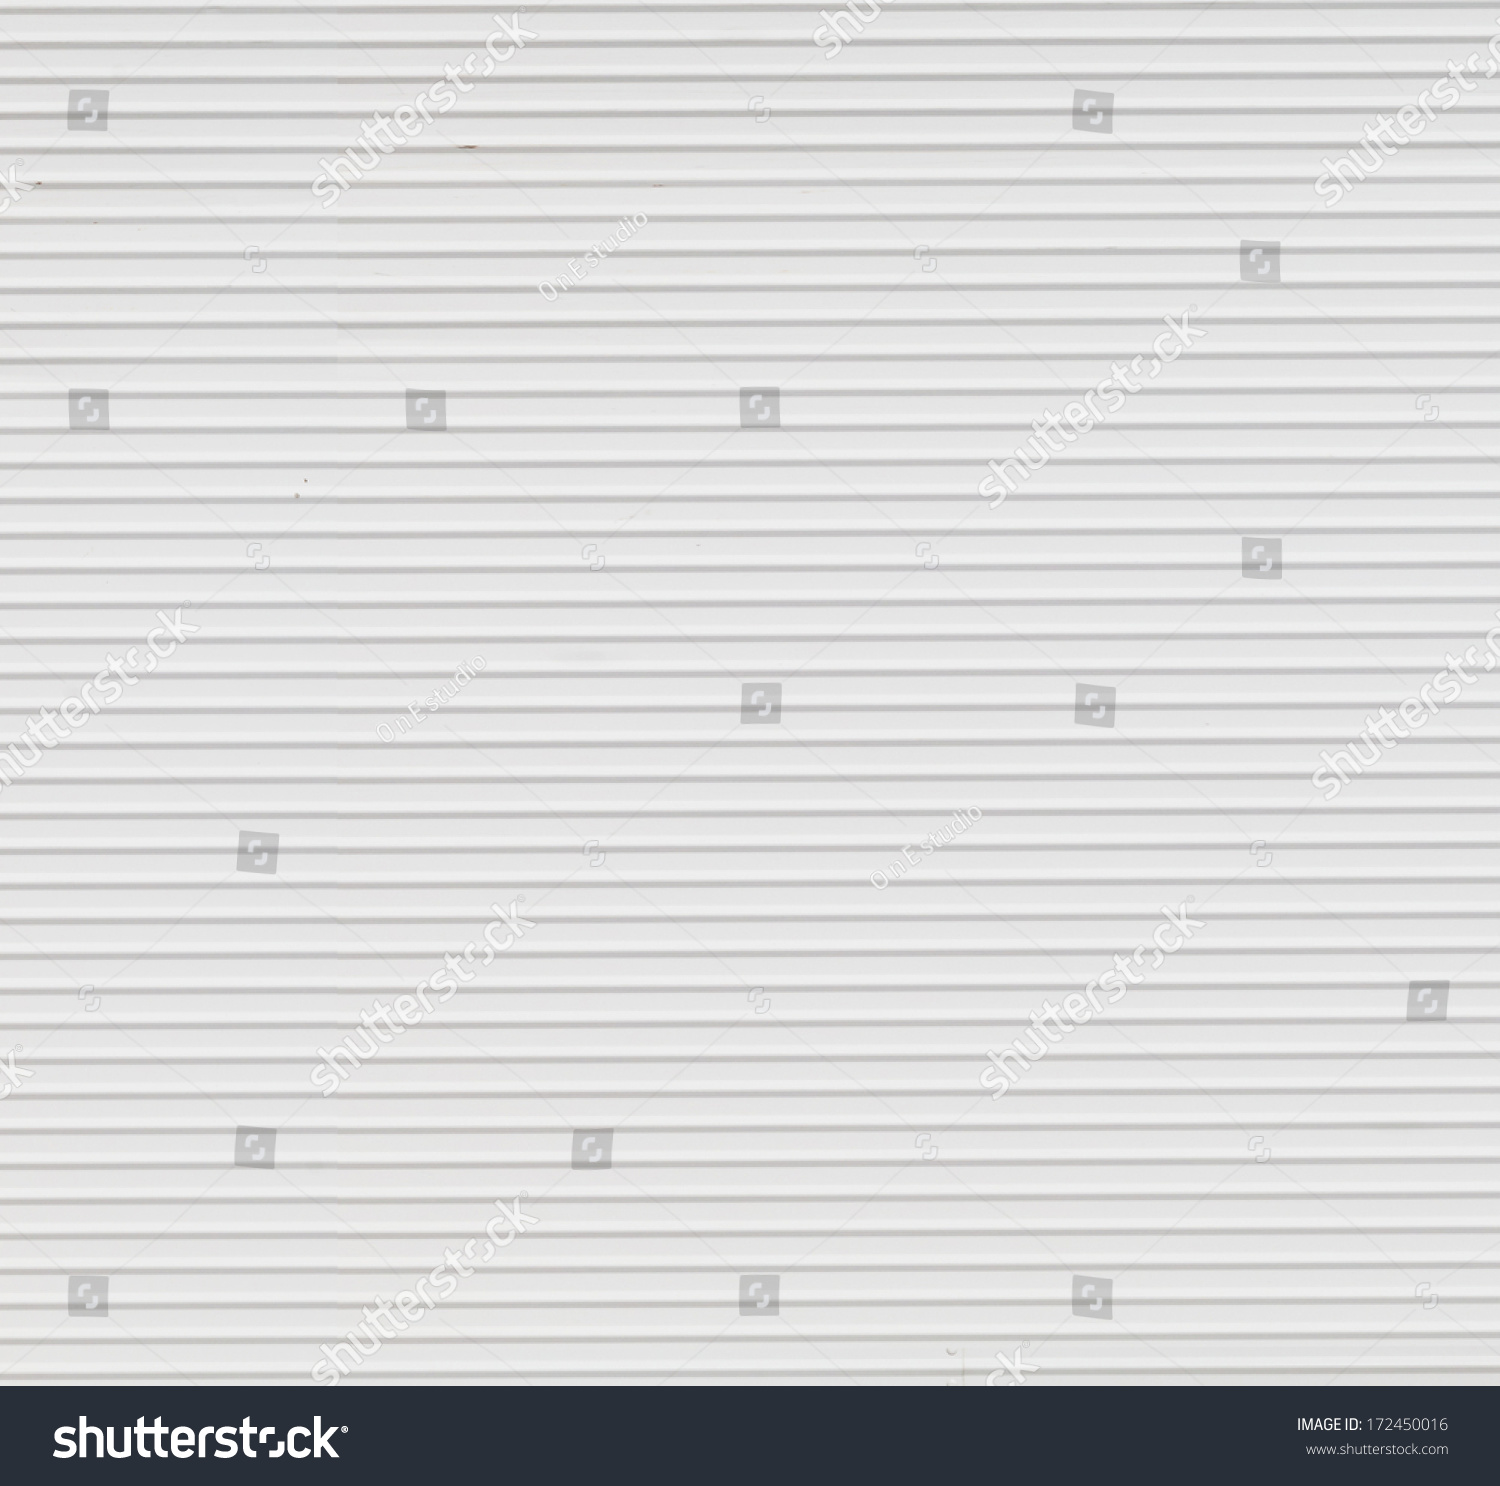 Construction Sheet Metal : Construction metal sheet stock photo shutterstock